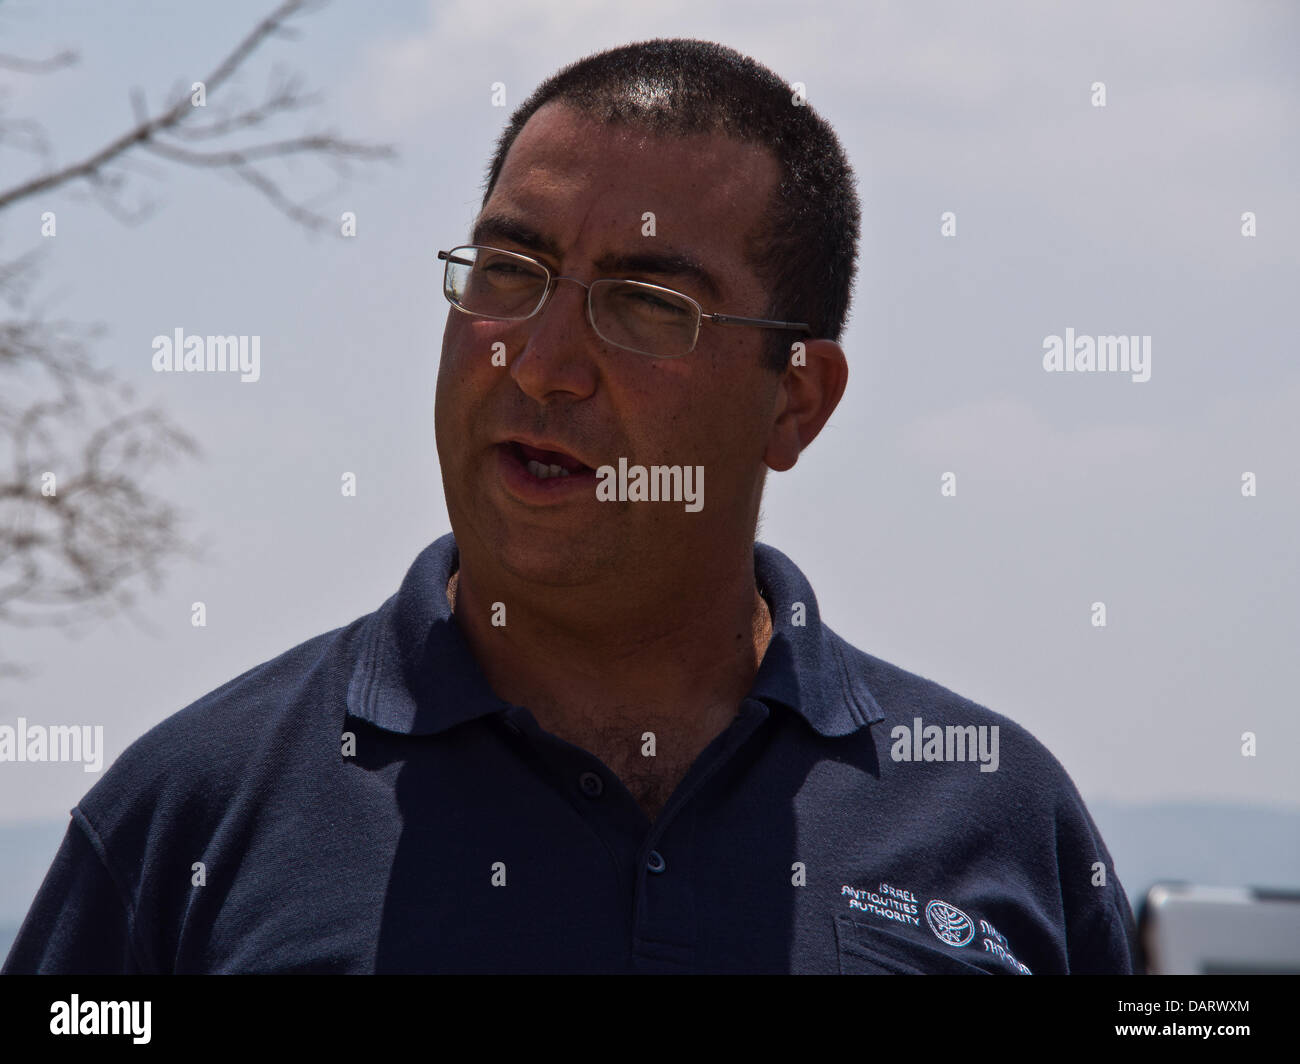 Bet Shemesh, Israel. 18th July 2013. SAAR GANOR, of the Israel Antiquities Authority, explains the significance - Stock Image